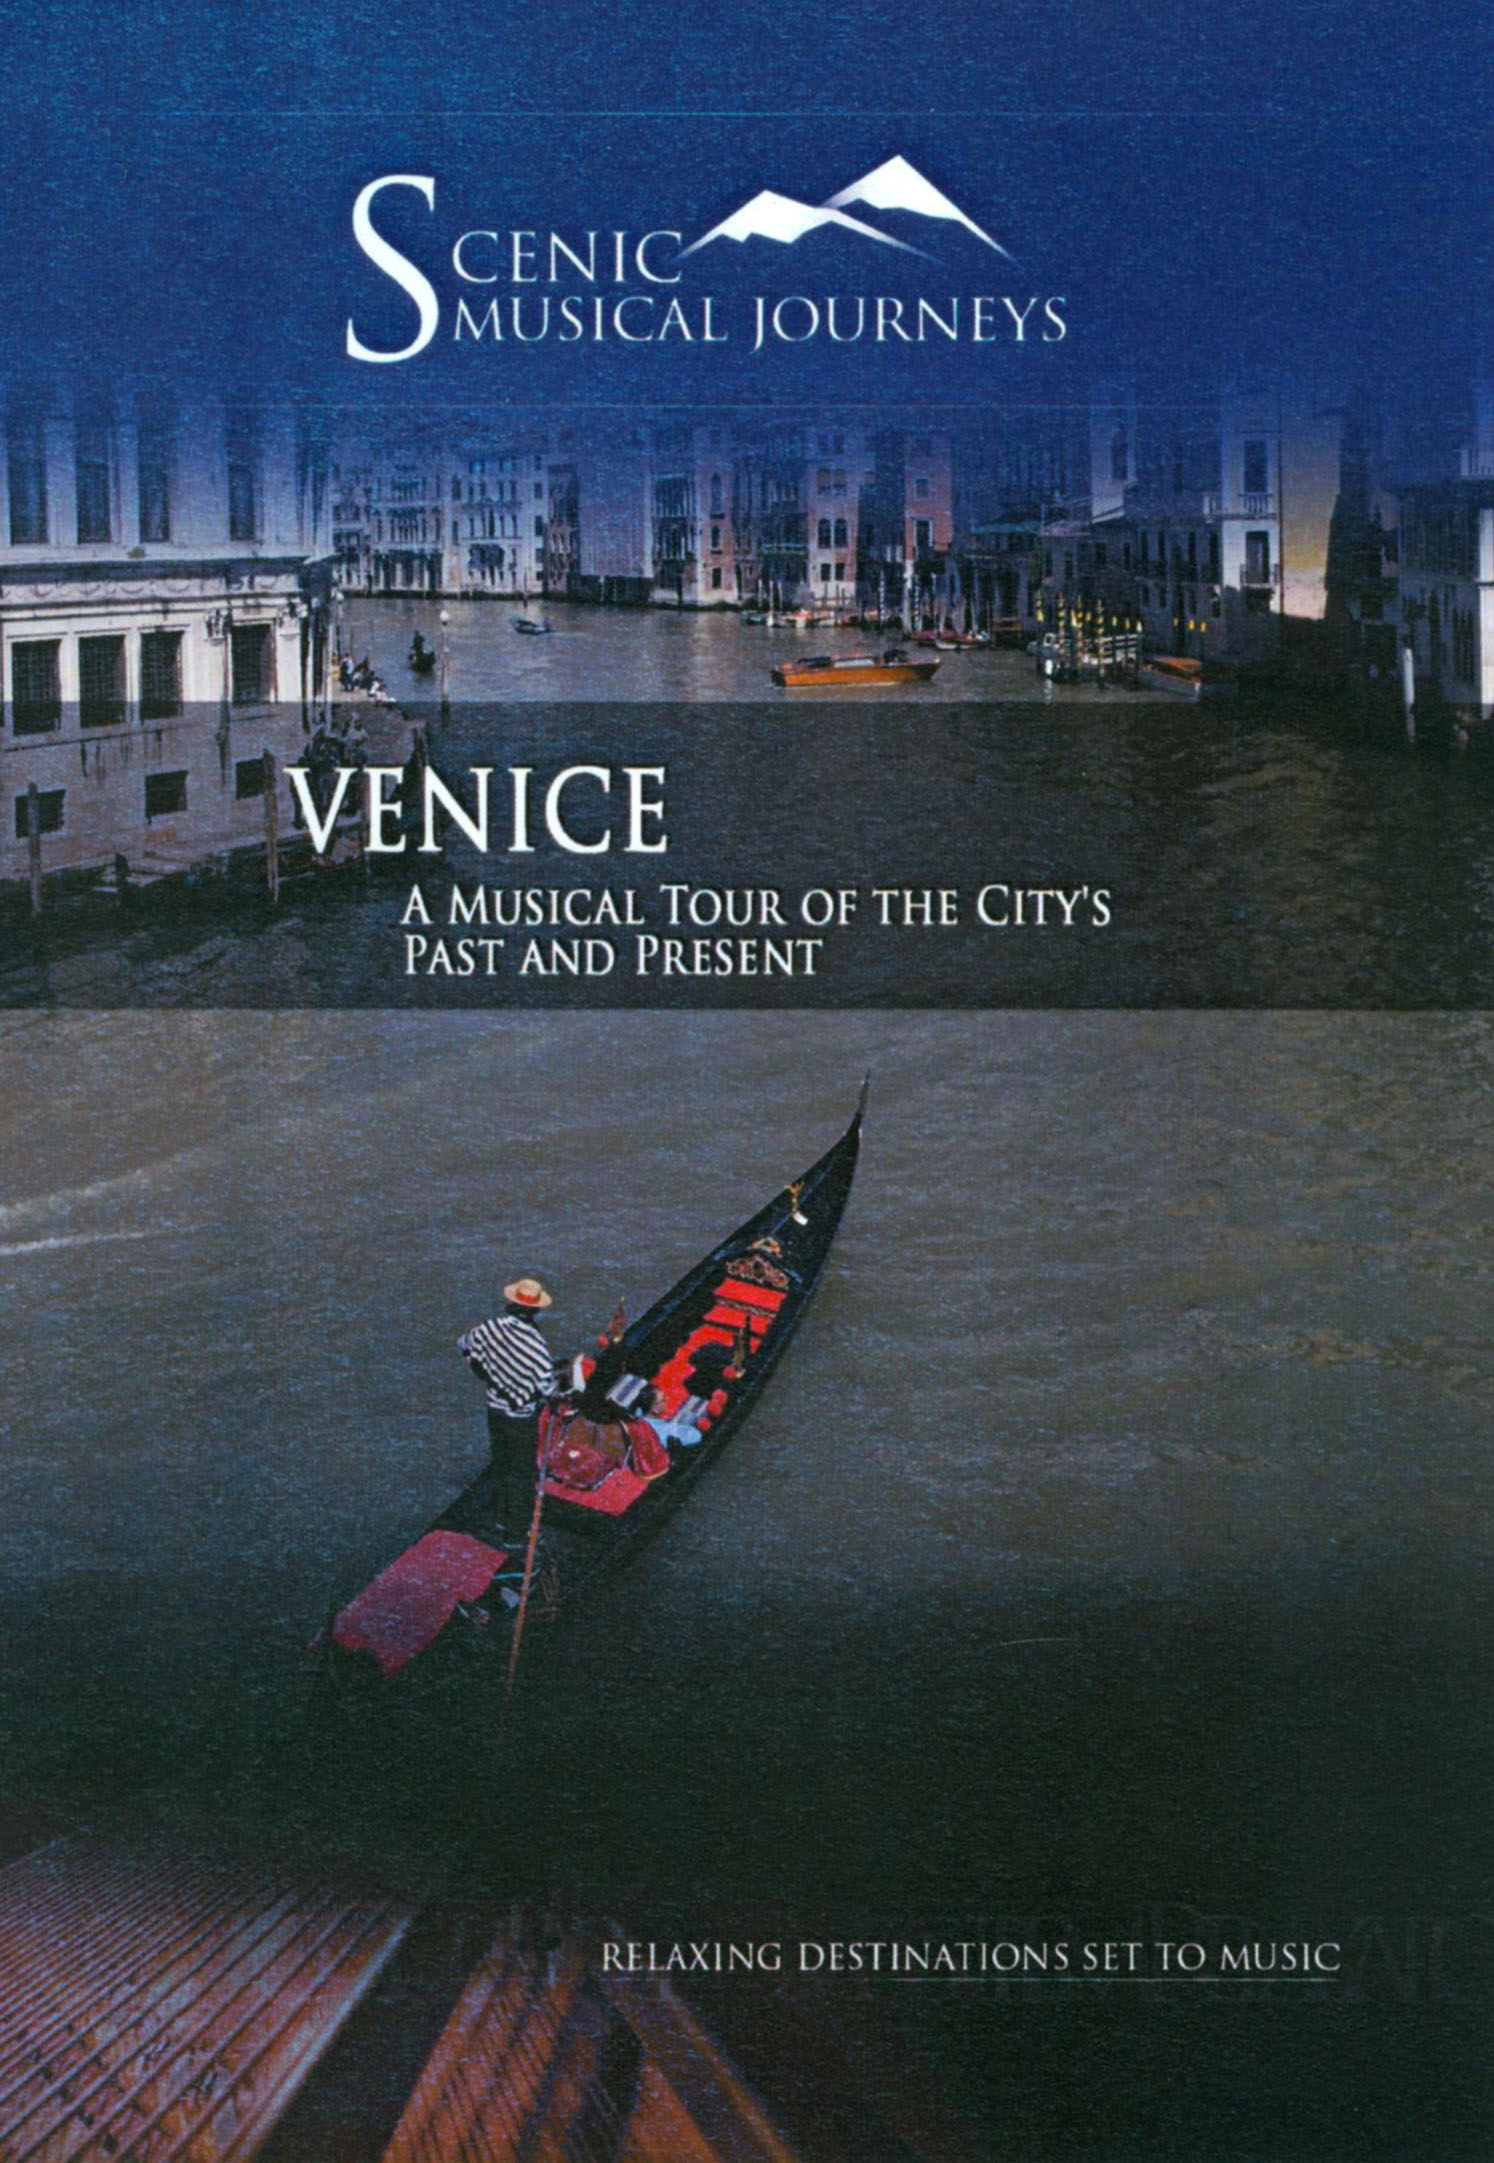 Scenic Musical Journeys: Venice - A Musical Tour of The City's Past and Present